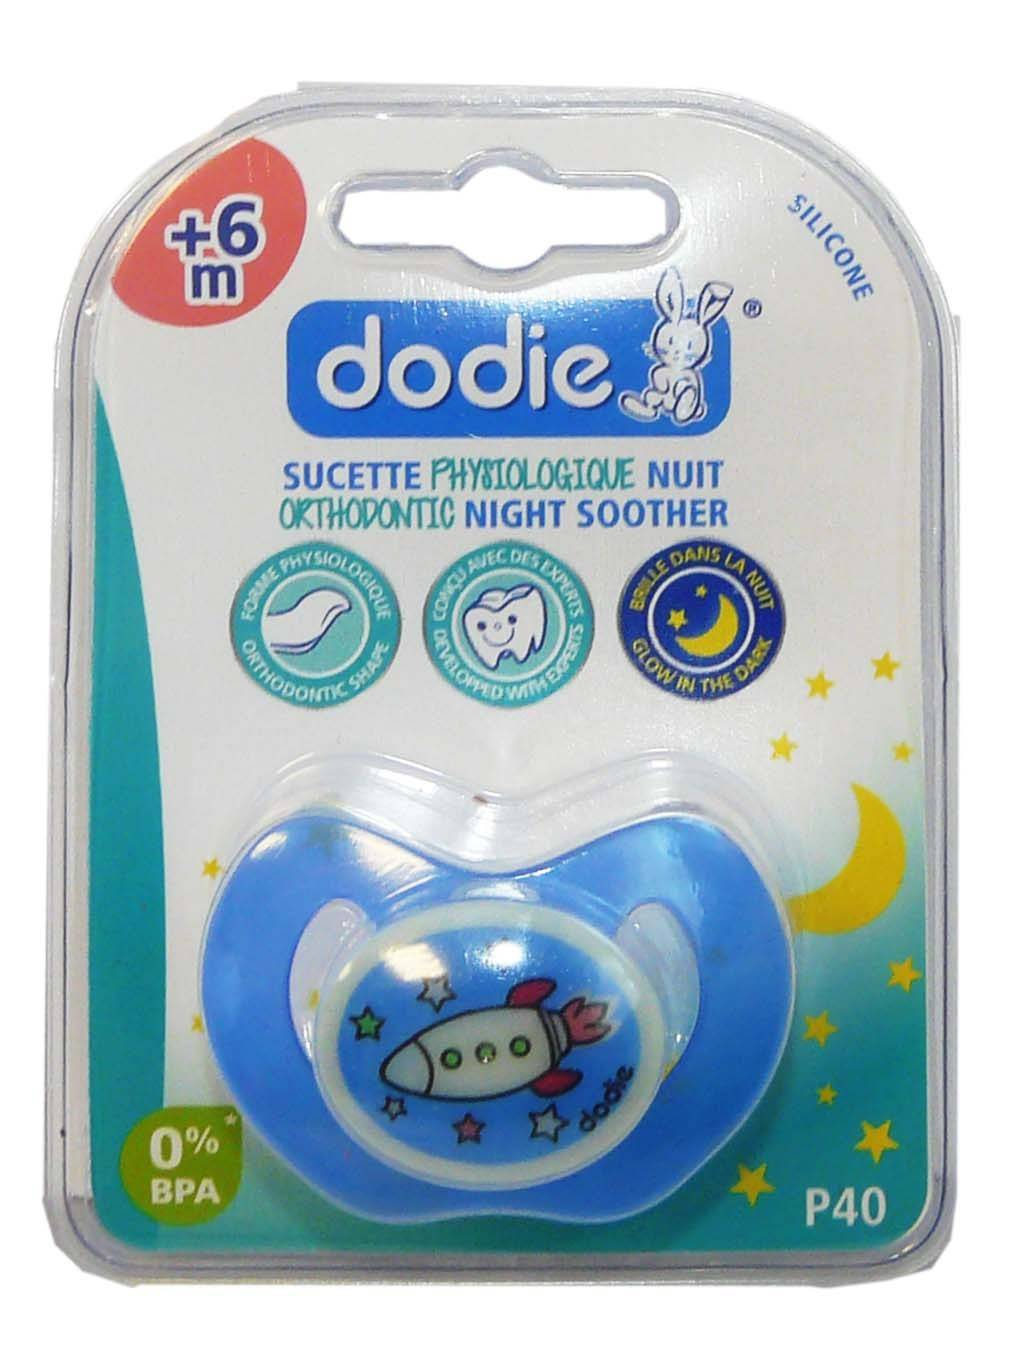 Dodie sucette orthodontic silicone nuit 6mois+